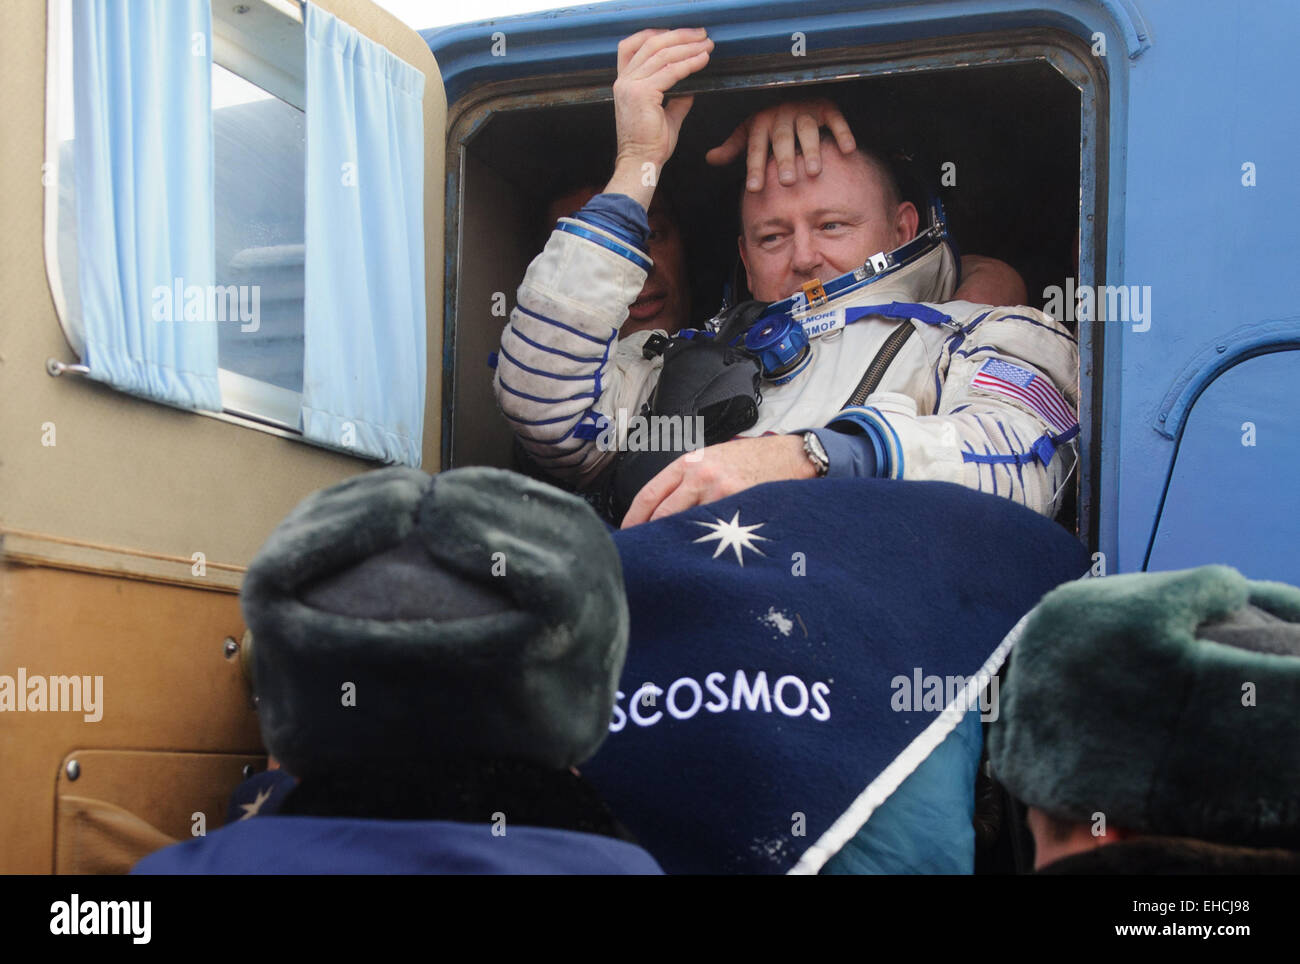 Kazakhstan. 12th March, 2015. ISS Expedition 41/42 crew member, NASA astronaut Barry Wilmore seen after the landing - Stock Image